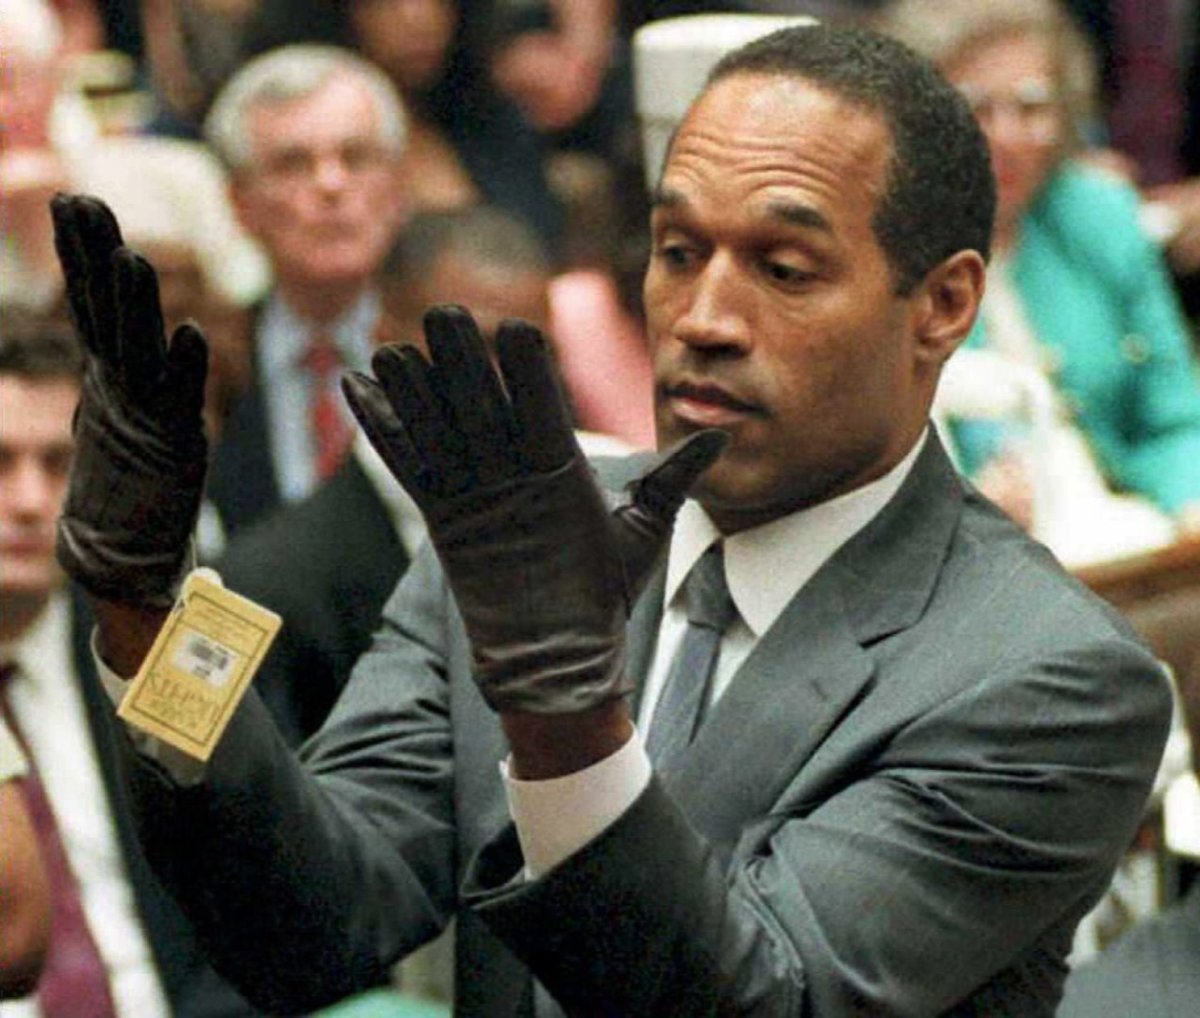 O.J. Simpson famously trying on the gloves